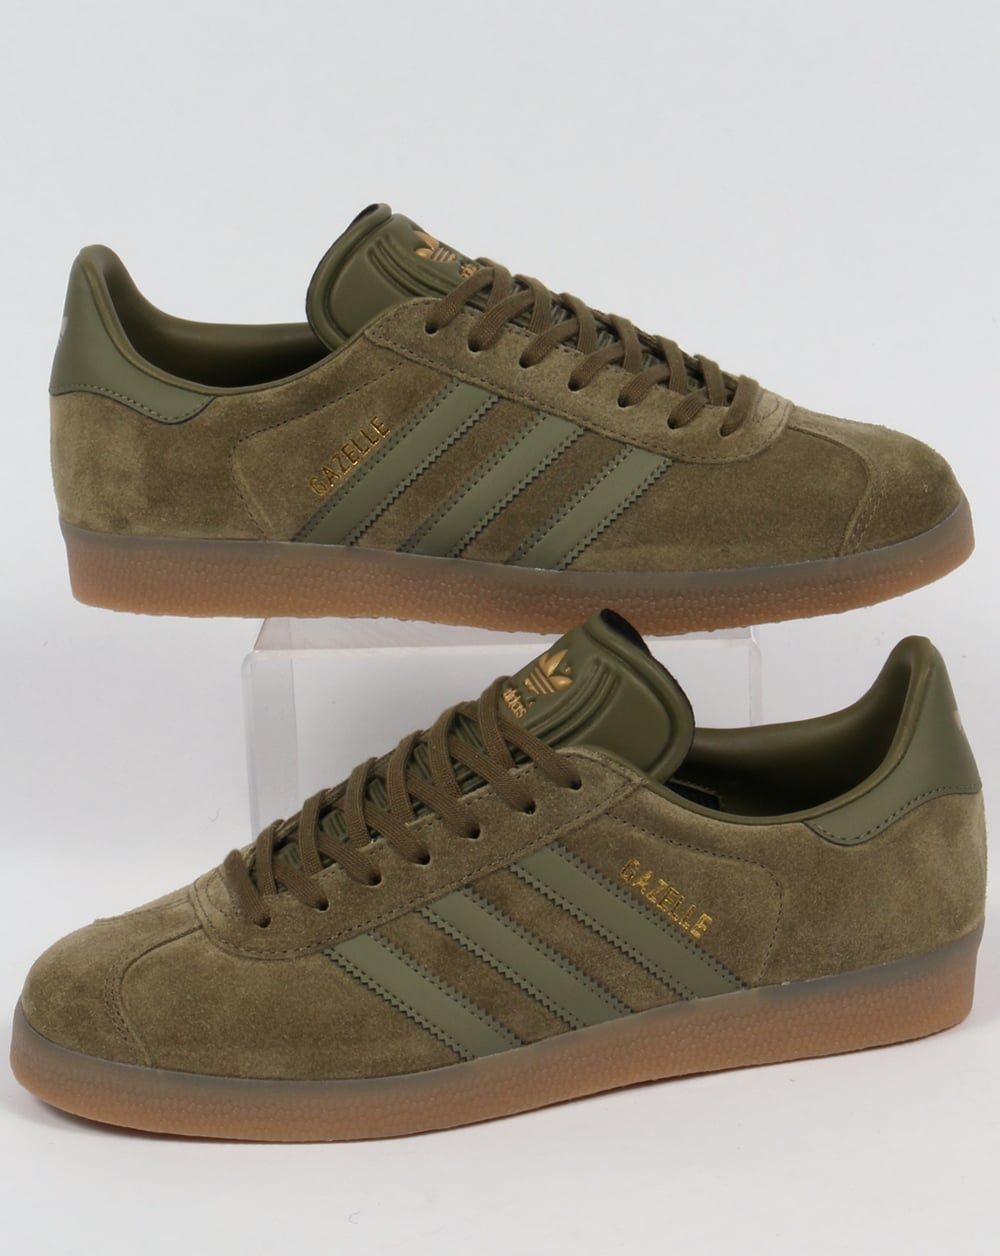 adidas originals beige gazelle trainers with gum sole